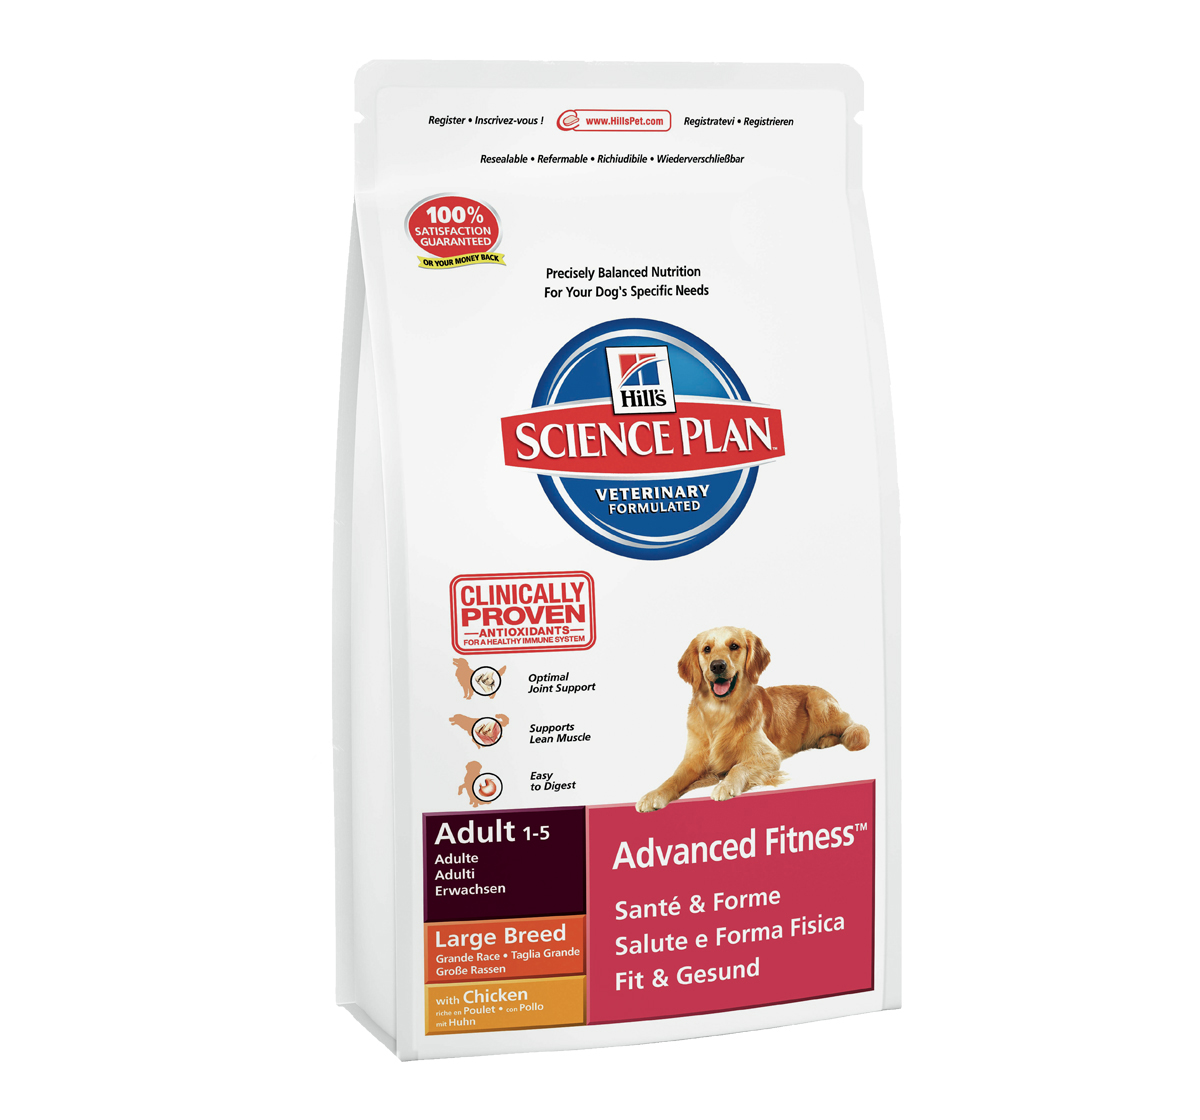 Science Plan Dog Food India